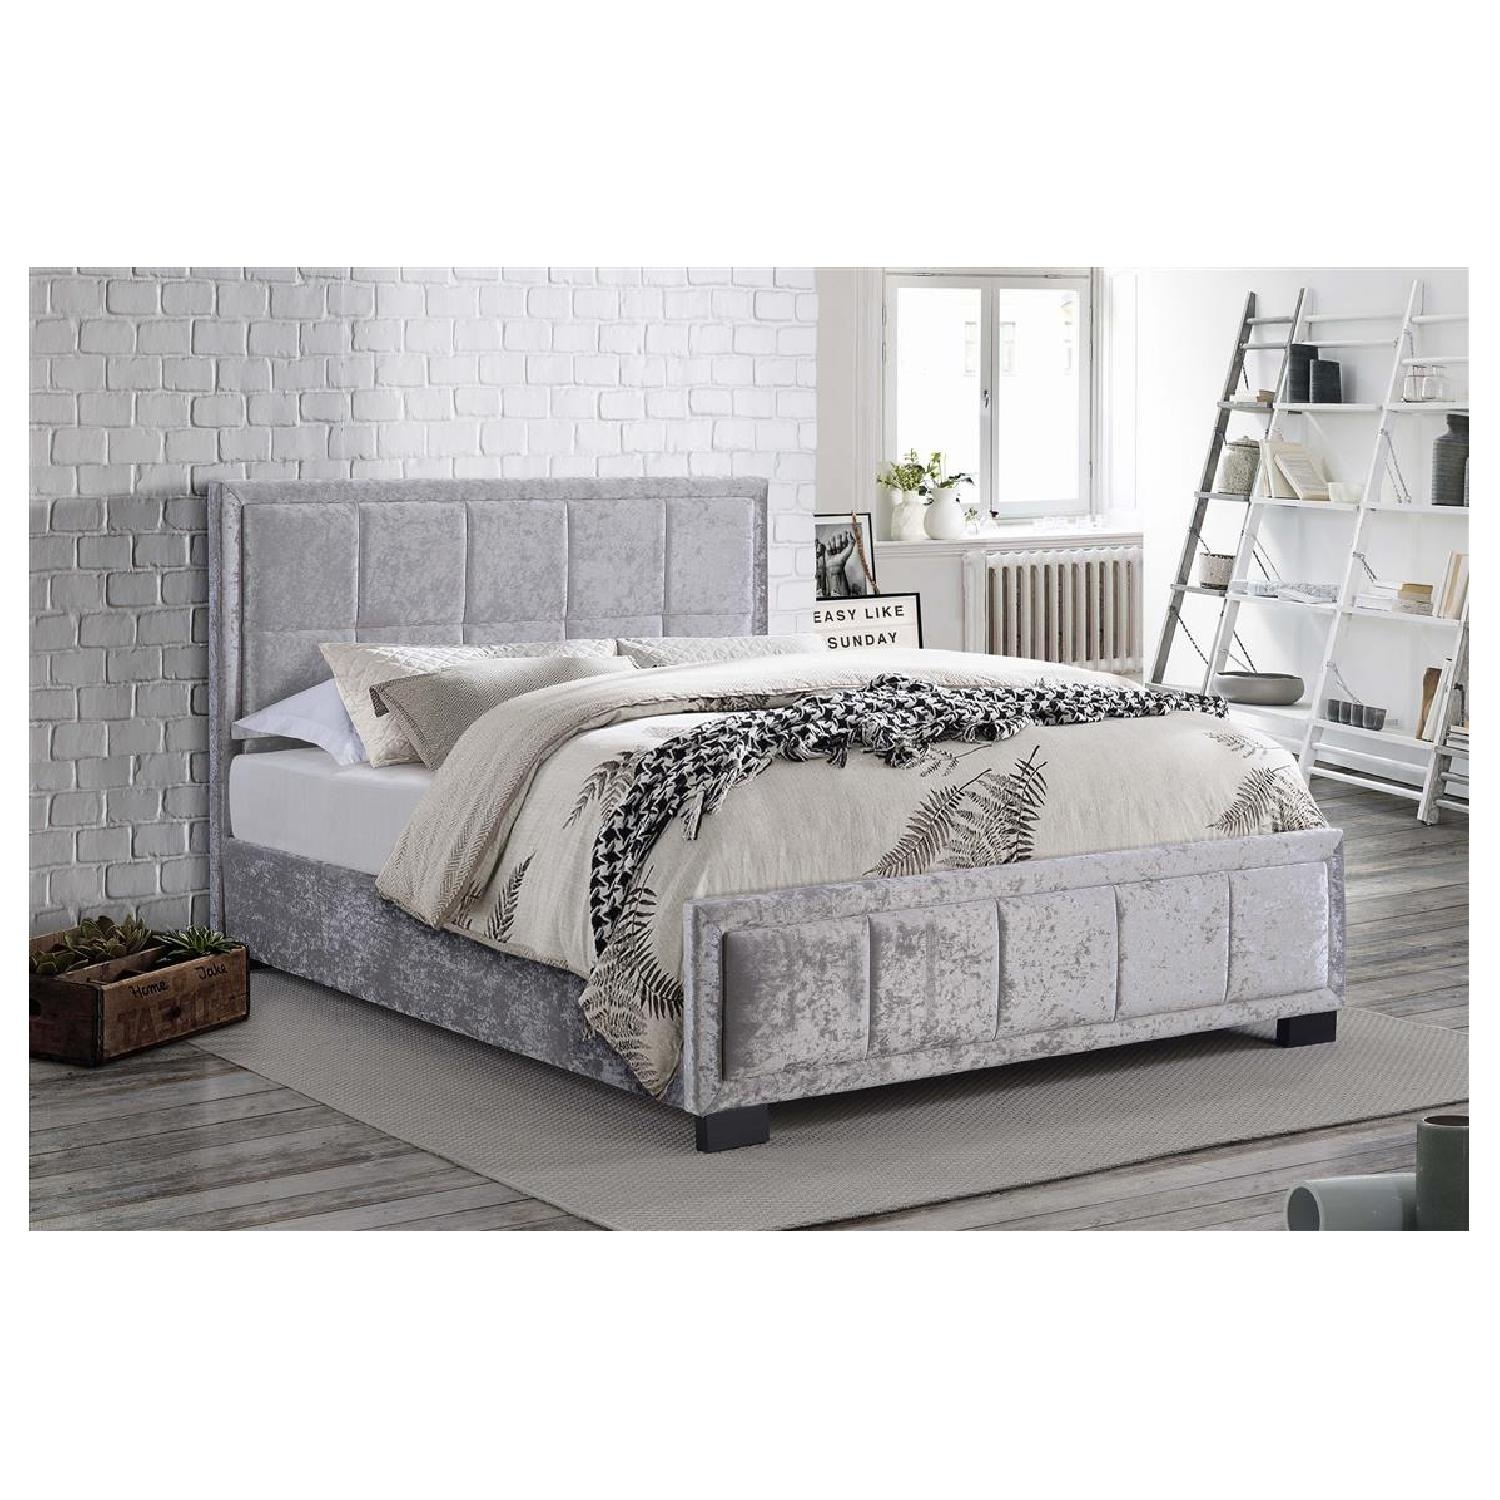 Birlea Hannover Fabric Bed Online Bed Amp Mattress Store